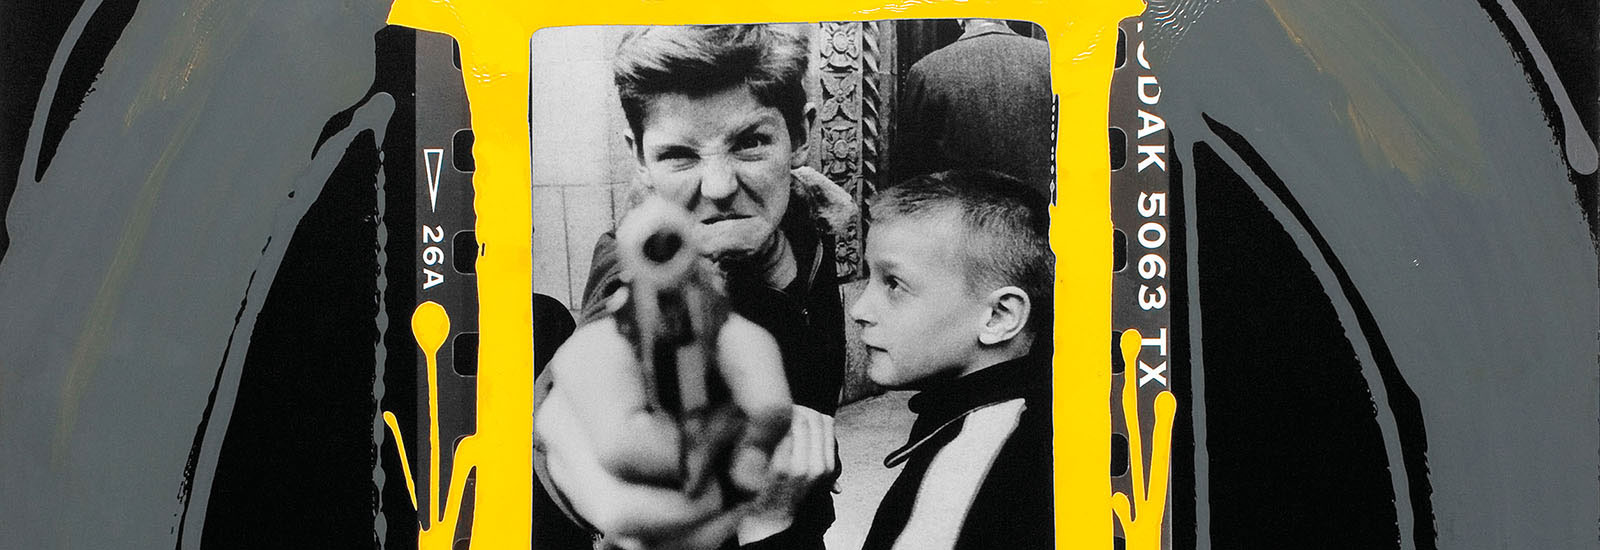 C/O Berlin |William Klein »Photographs And Films«